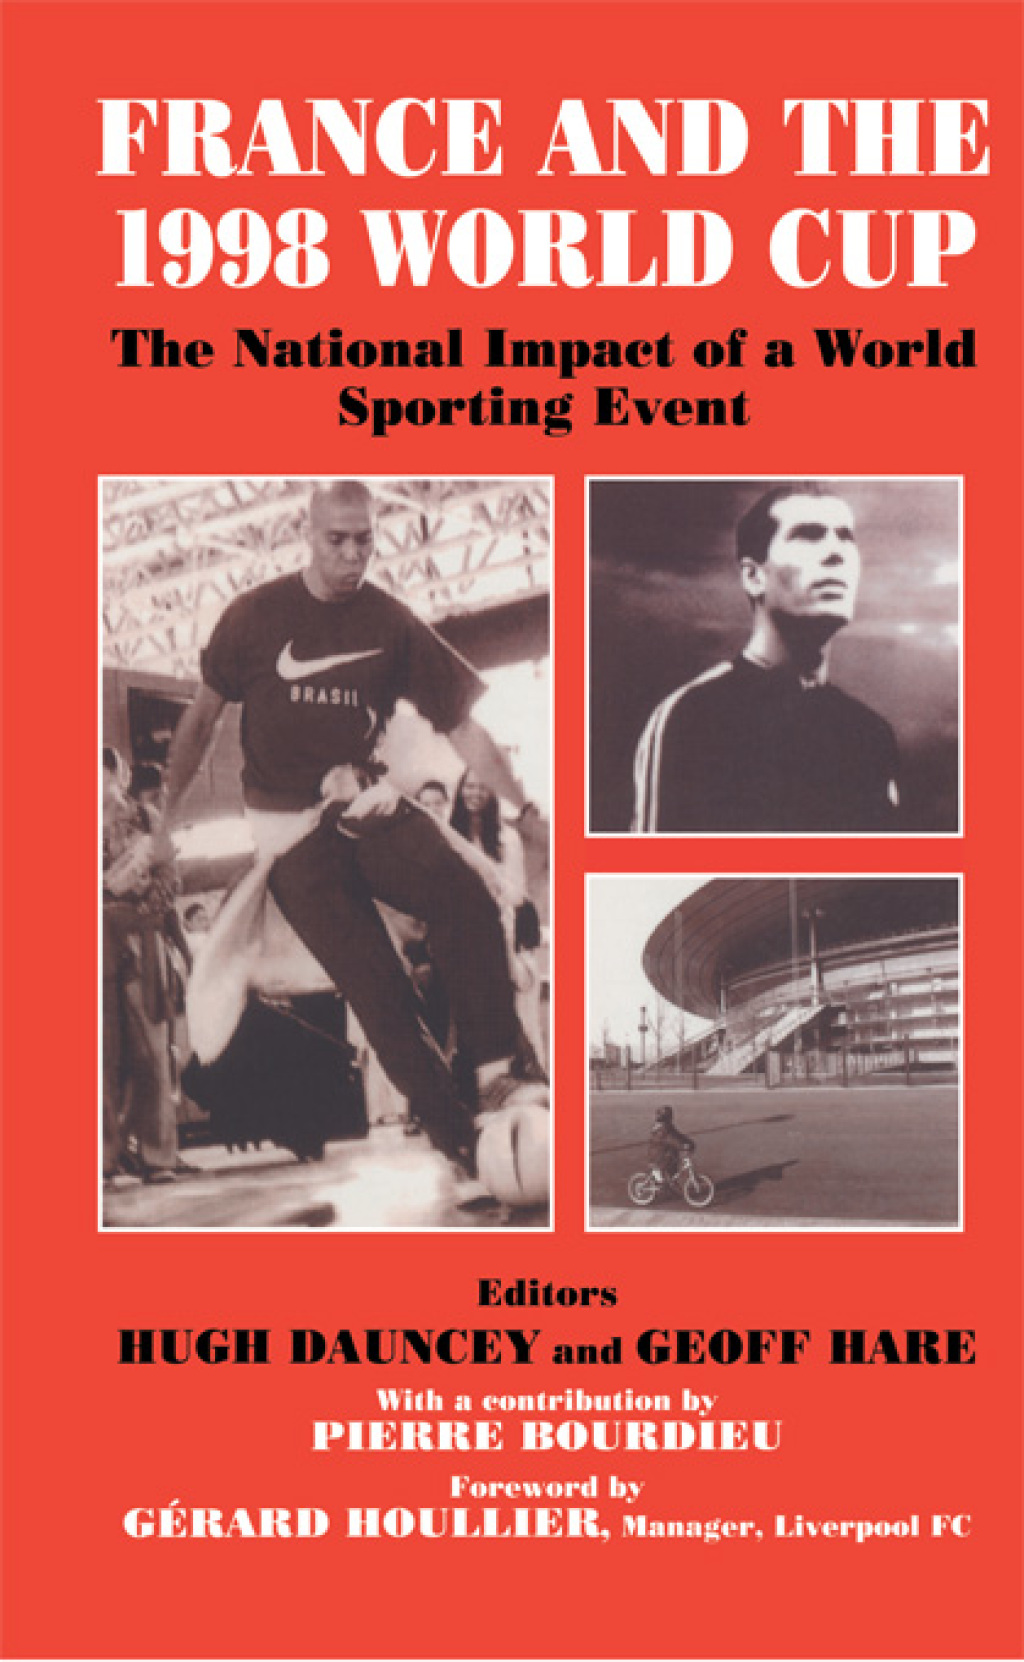 France and the 1998 World Cup (ebook) eBooks